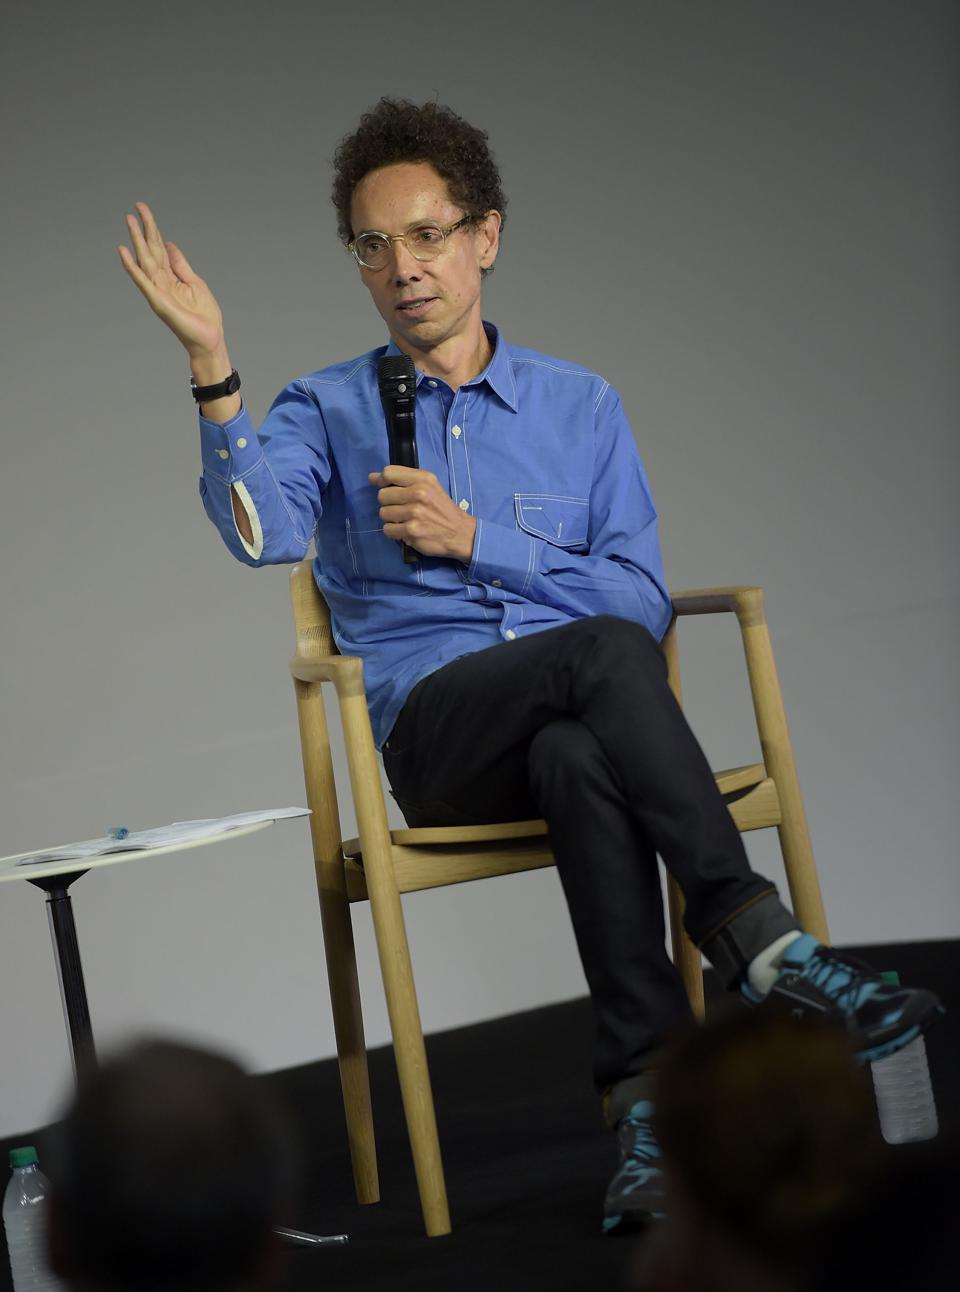 Malcolm Gladwell Demonstrates The Fairness Of Extra Time As A Disability Accommodation